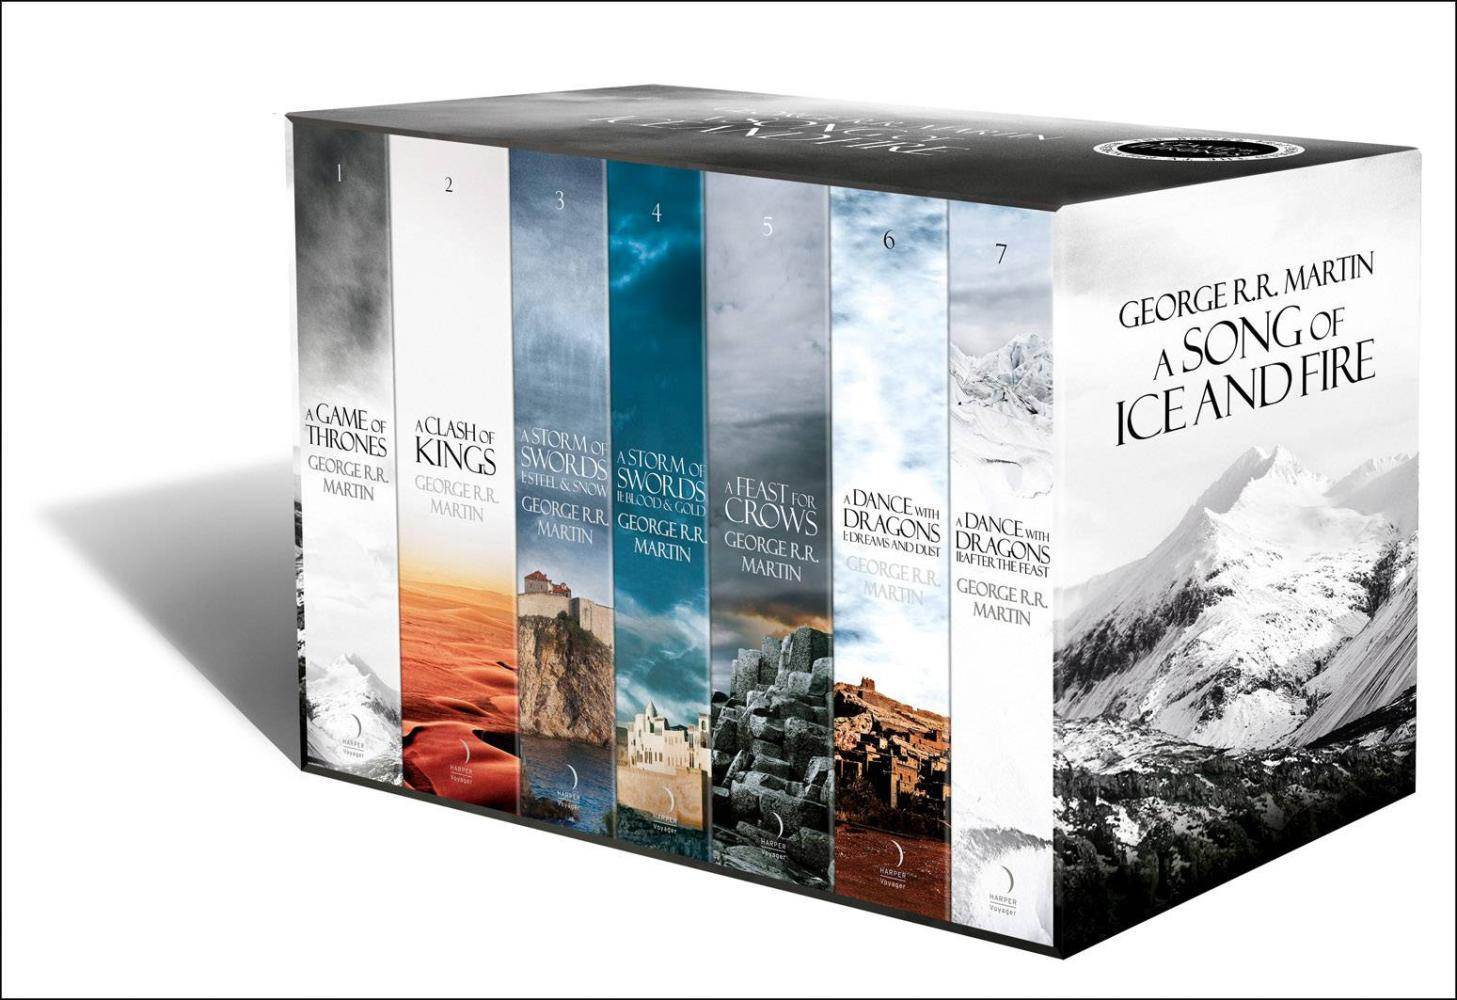 a-song-of-ice-and-fire-box-set-buy-this-and-get-dangerous-women-free-